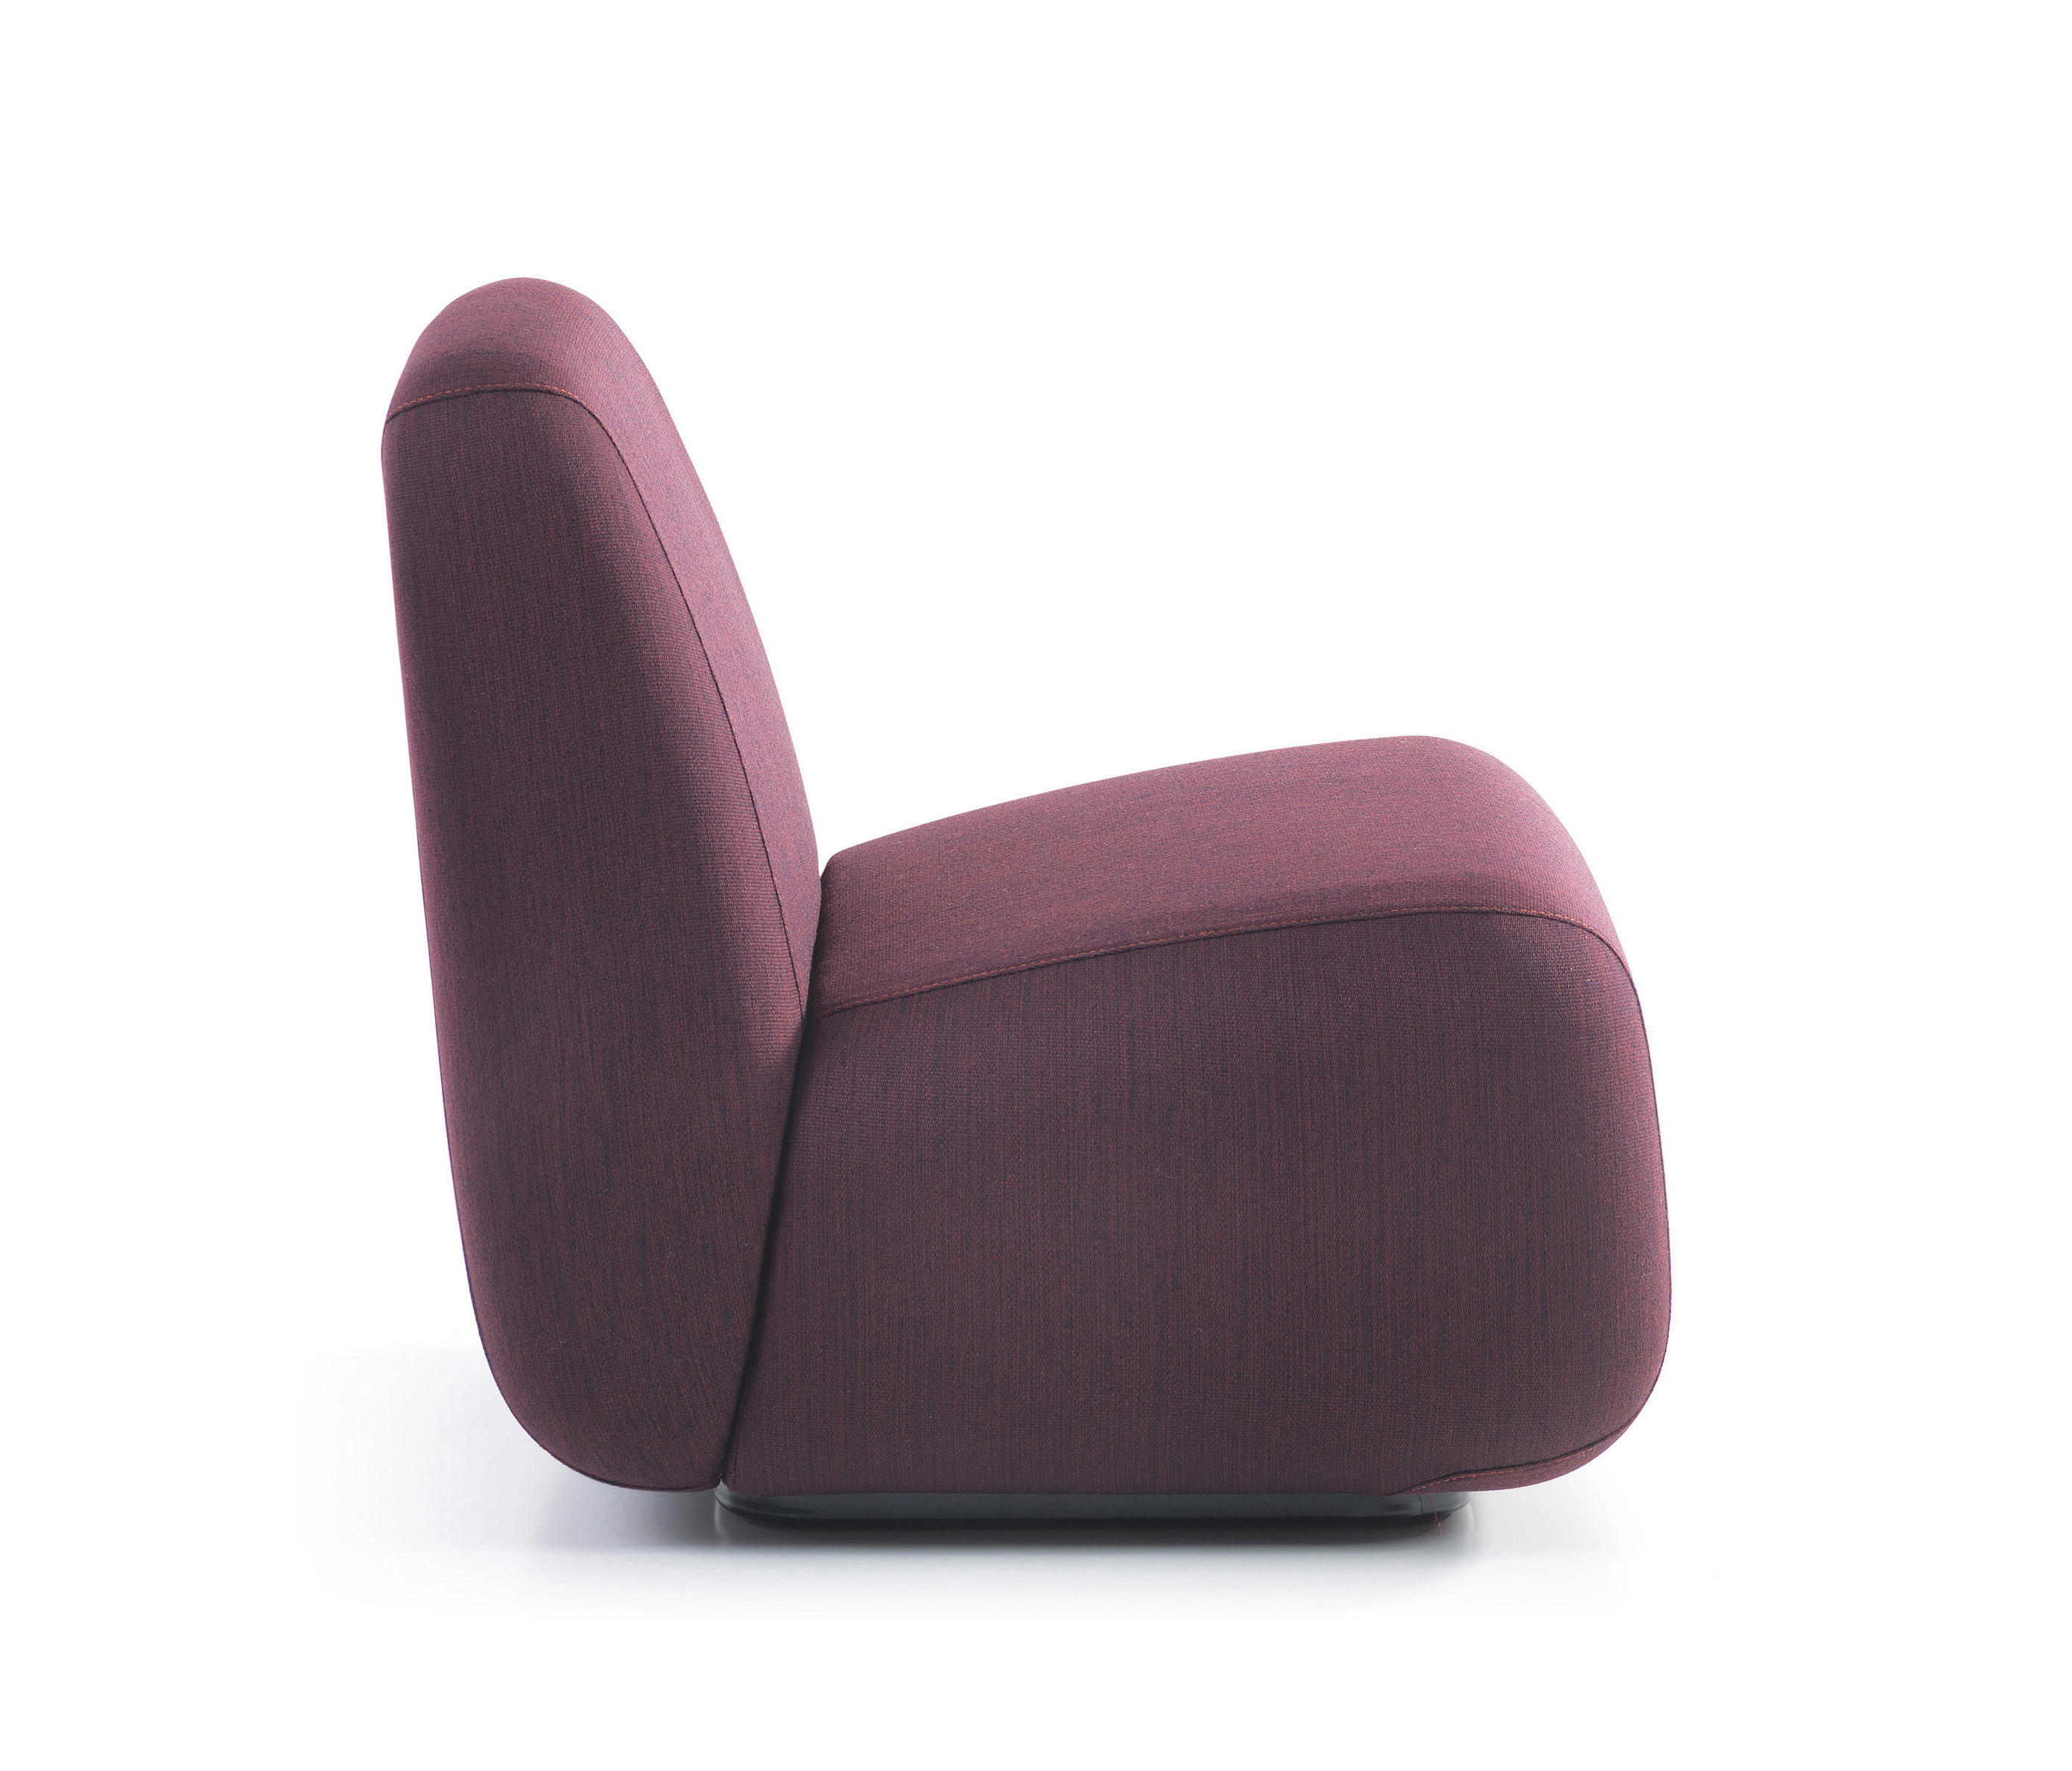 APERI EASY CHAIR Modular seating elements from